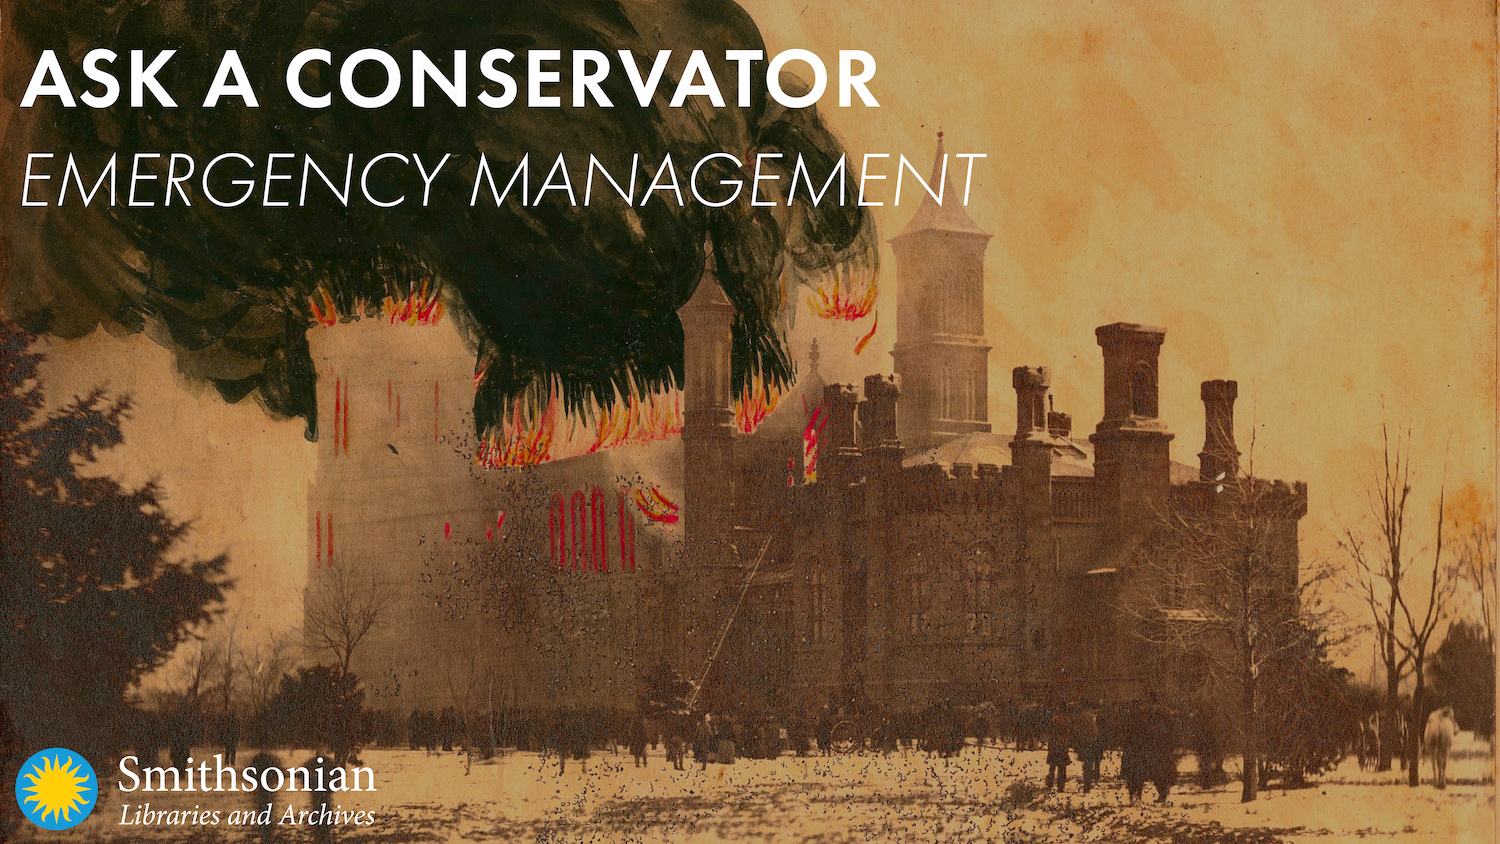 """Hand-colored photograph of the Smithsonian Castle on fire in 1865 with text overlayed that reads """"Ask a Conservator: Emergency Management"""""""